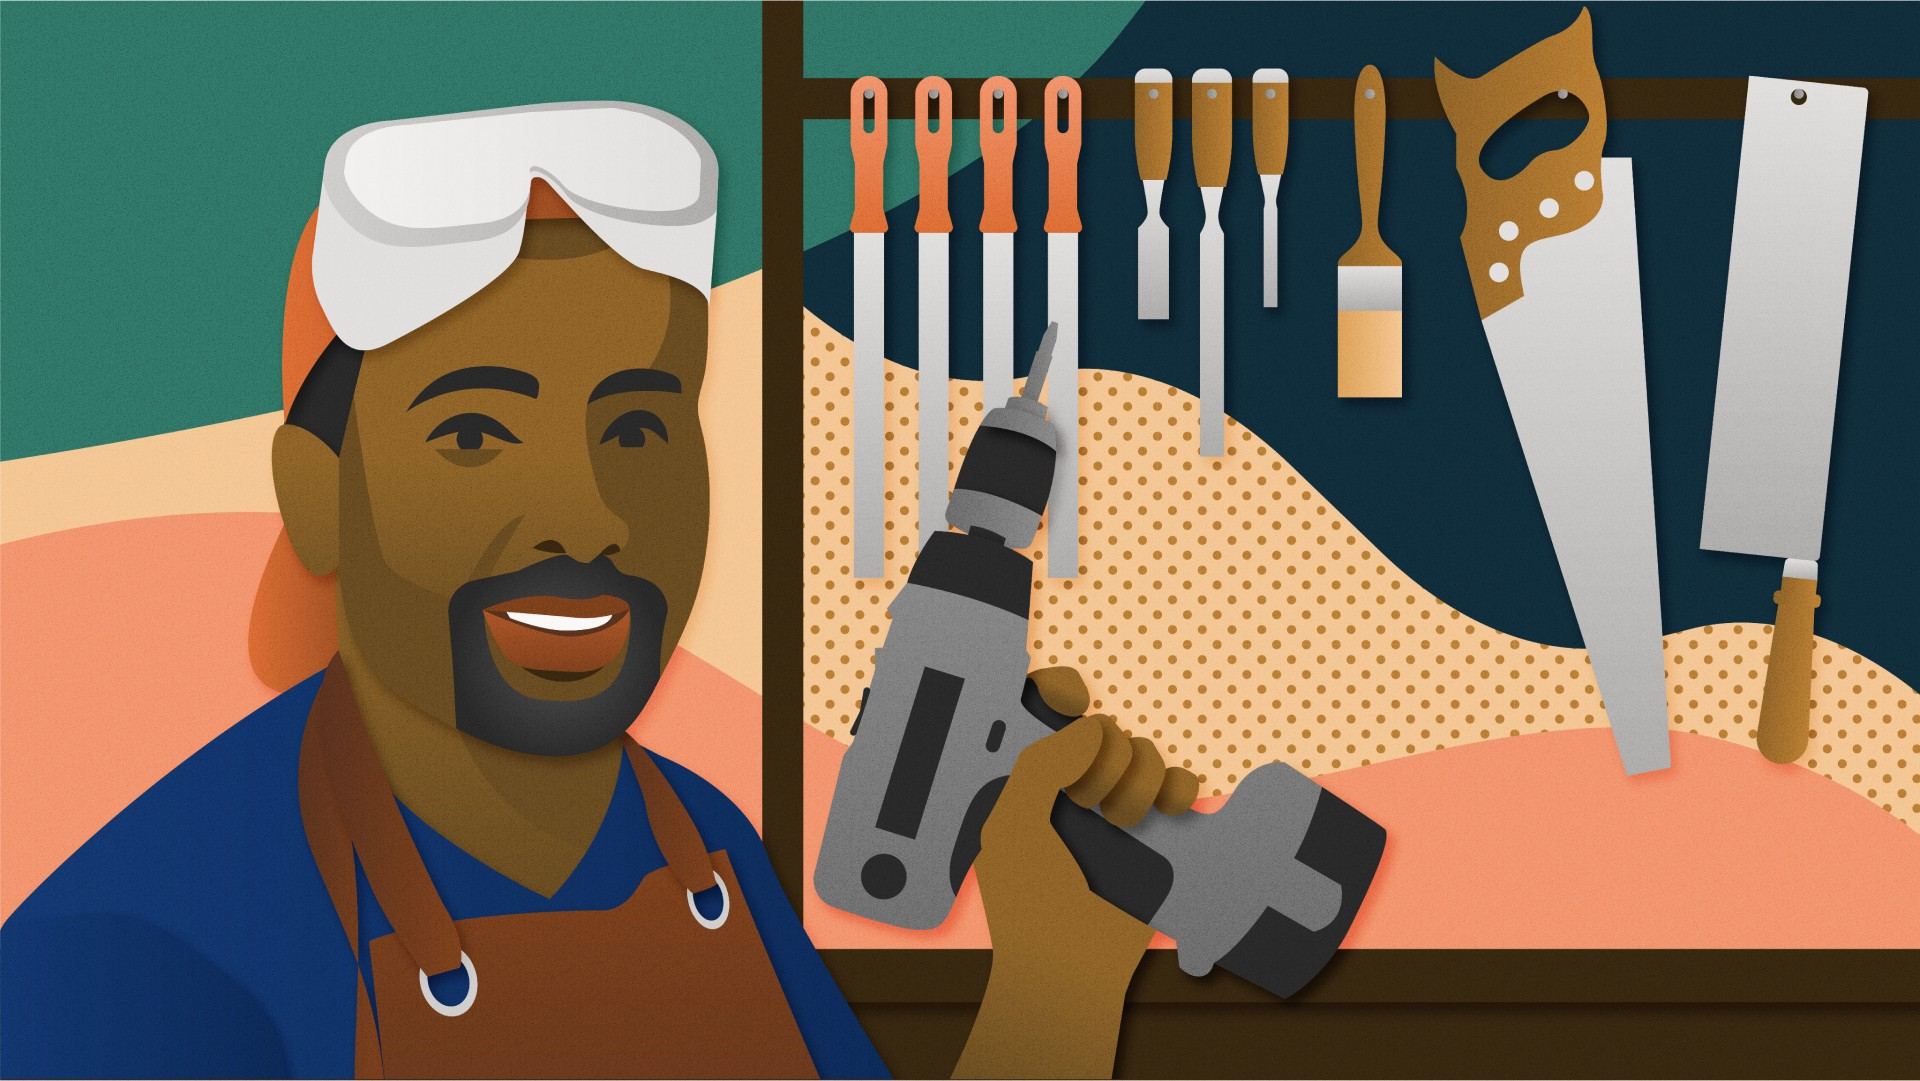 Jomo Tariku, a Black man, wears work clothes and holds a drill in front of a rack of hand tools.